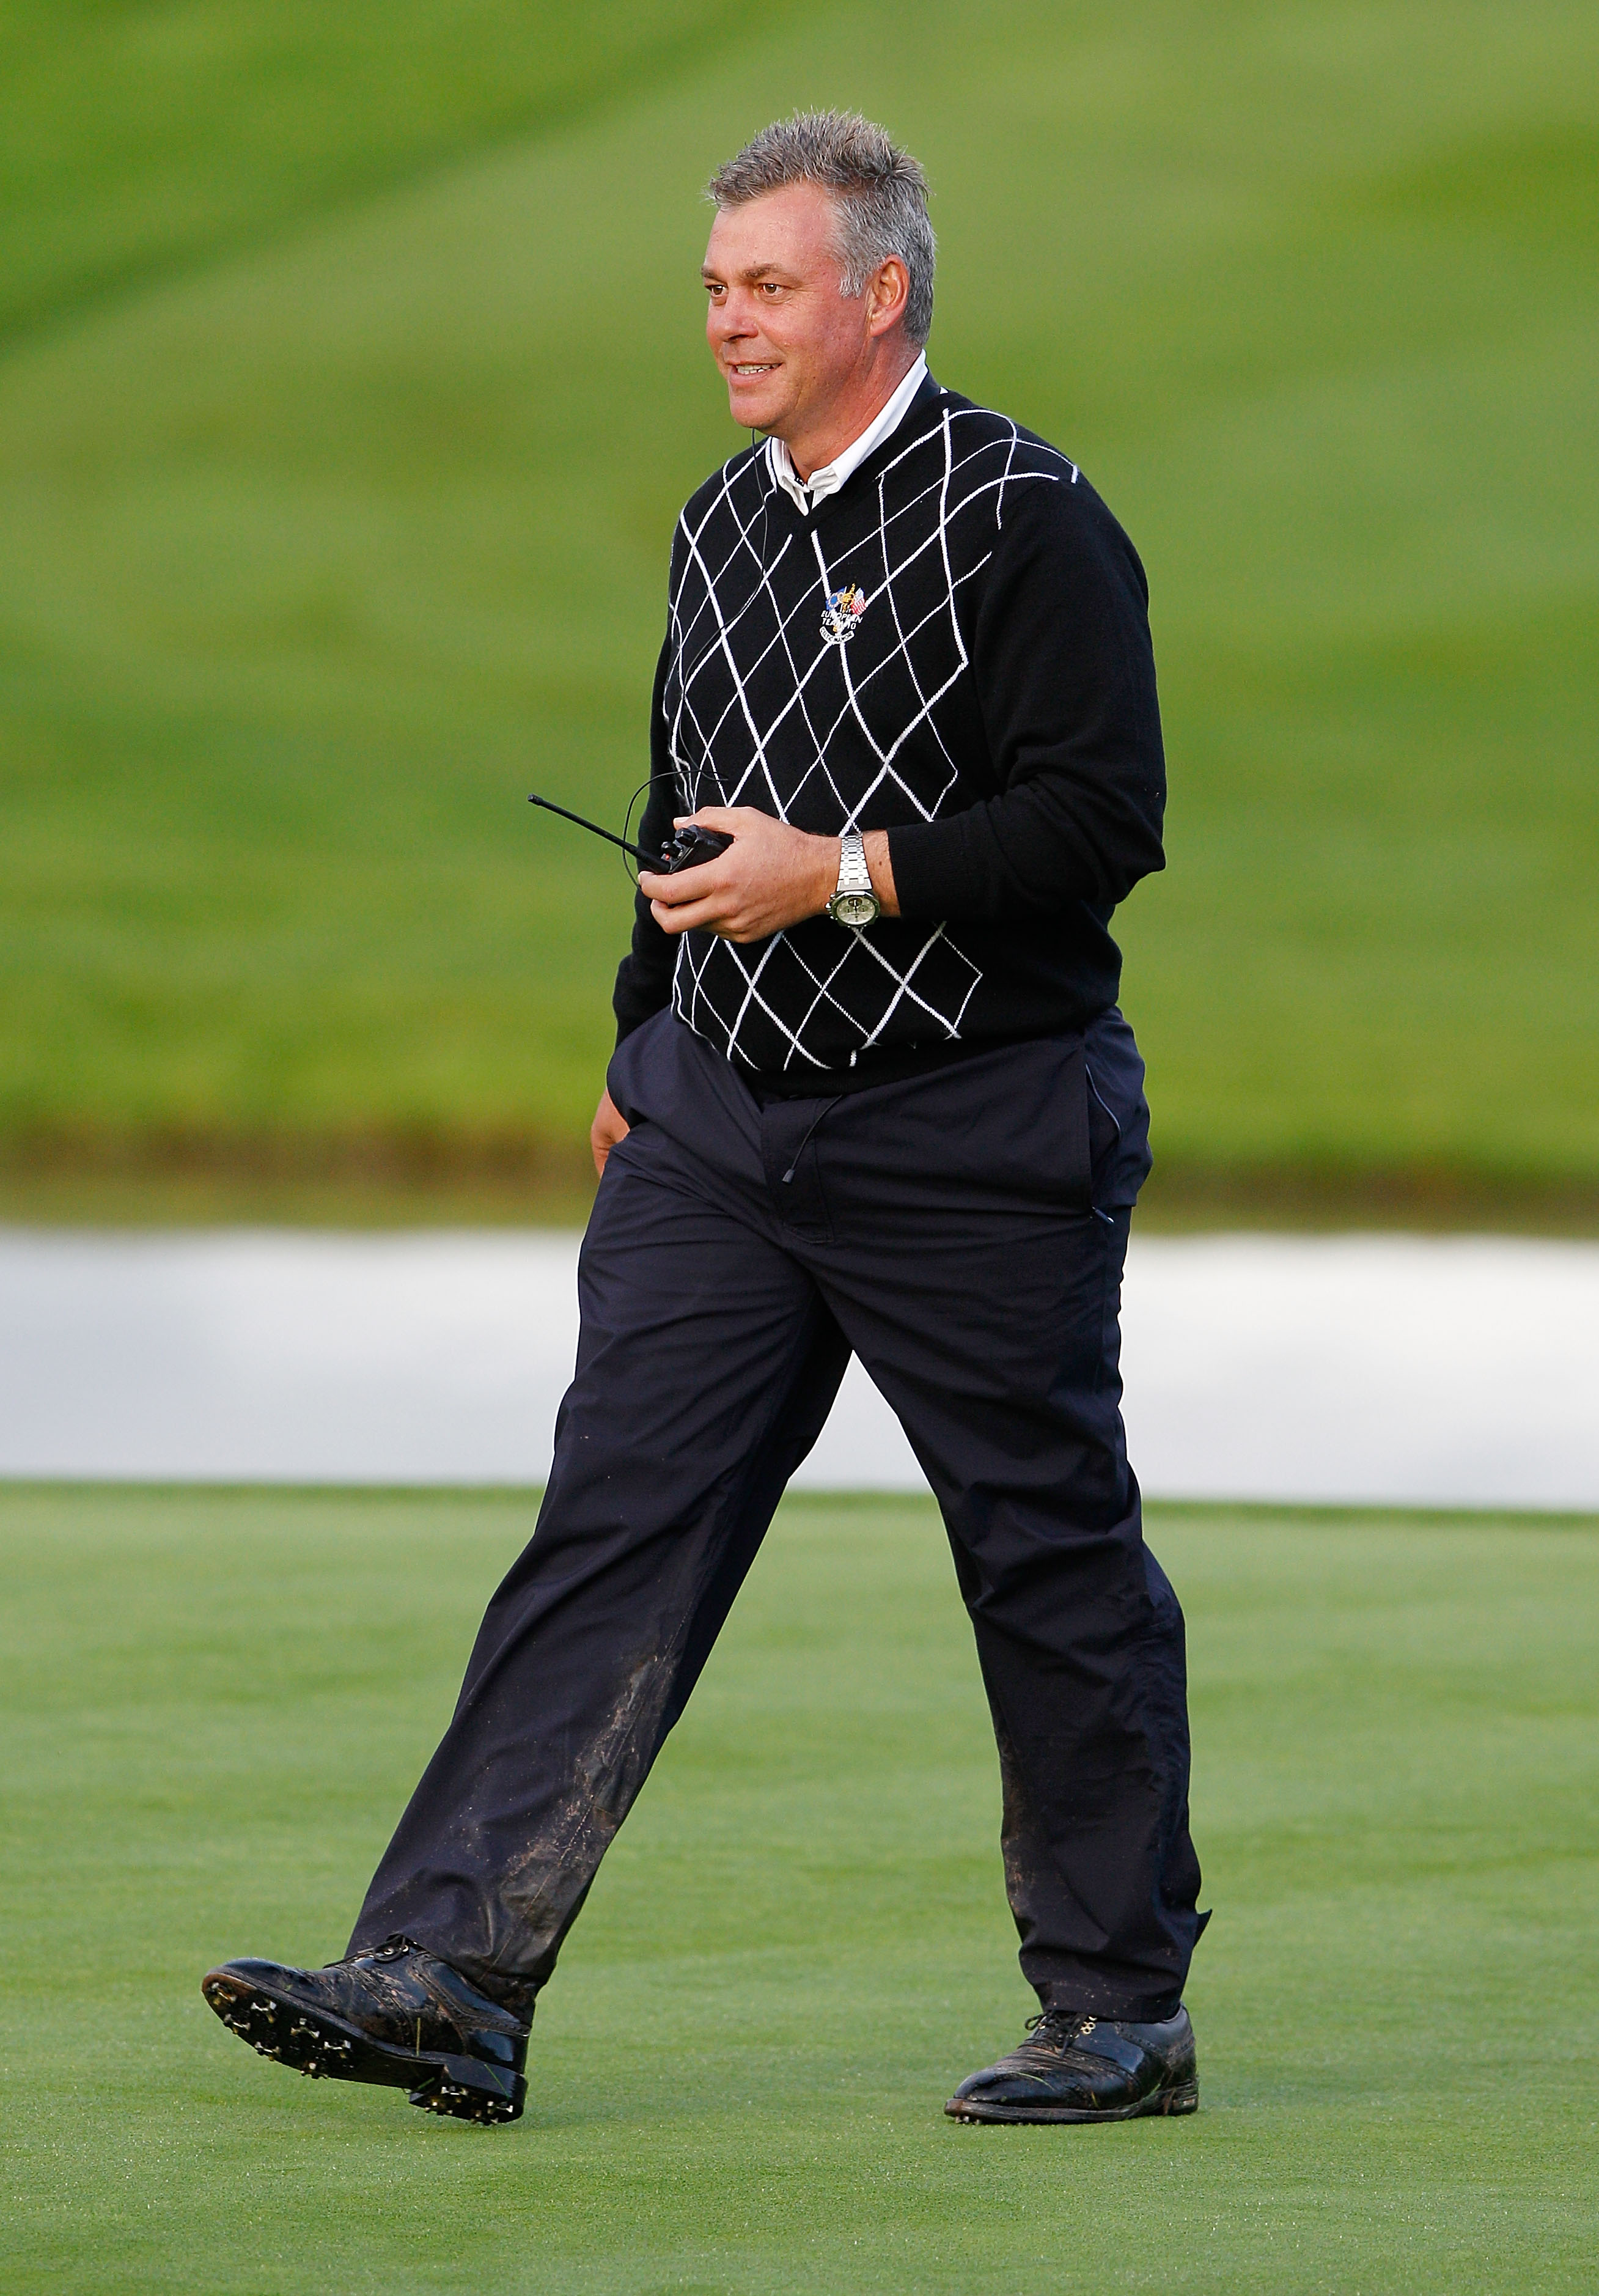 NEWPORT, WALES - OCTOBER 03:  Europe Vice Captain Darren Clarke looks on during the  Fourball & Foursome Matches during the 2010 Ryder Cup at the Celtic Manor Resort on October 3, 2010 in Newport, Wales.  (Photo by Sam Greenwood/Getty Images)